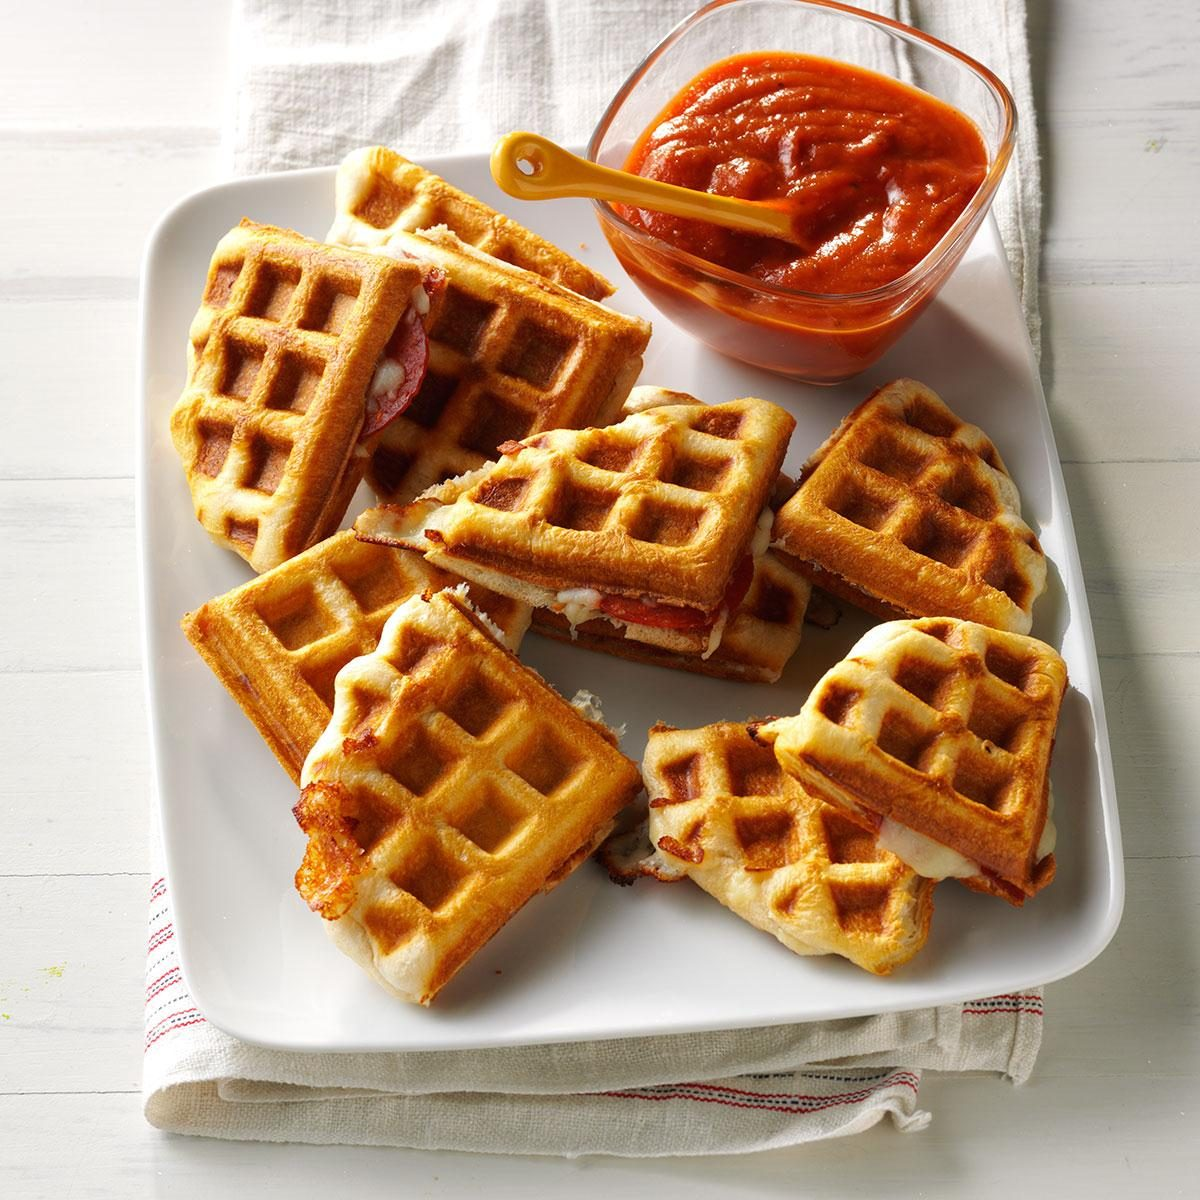 High School Age: Waffle-Iron Pizzas